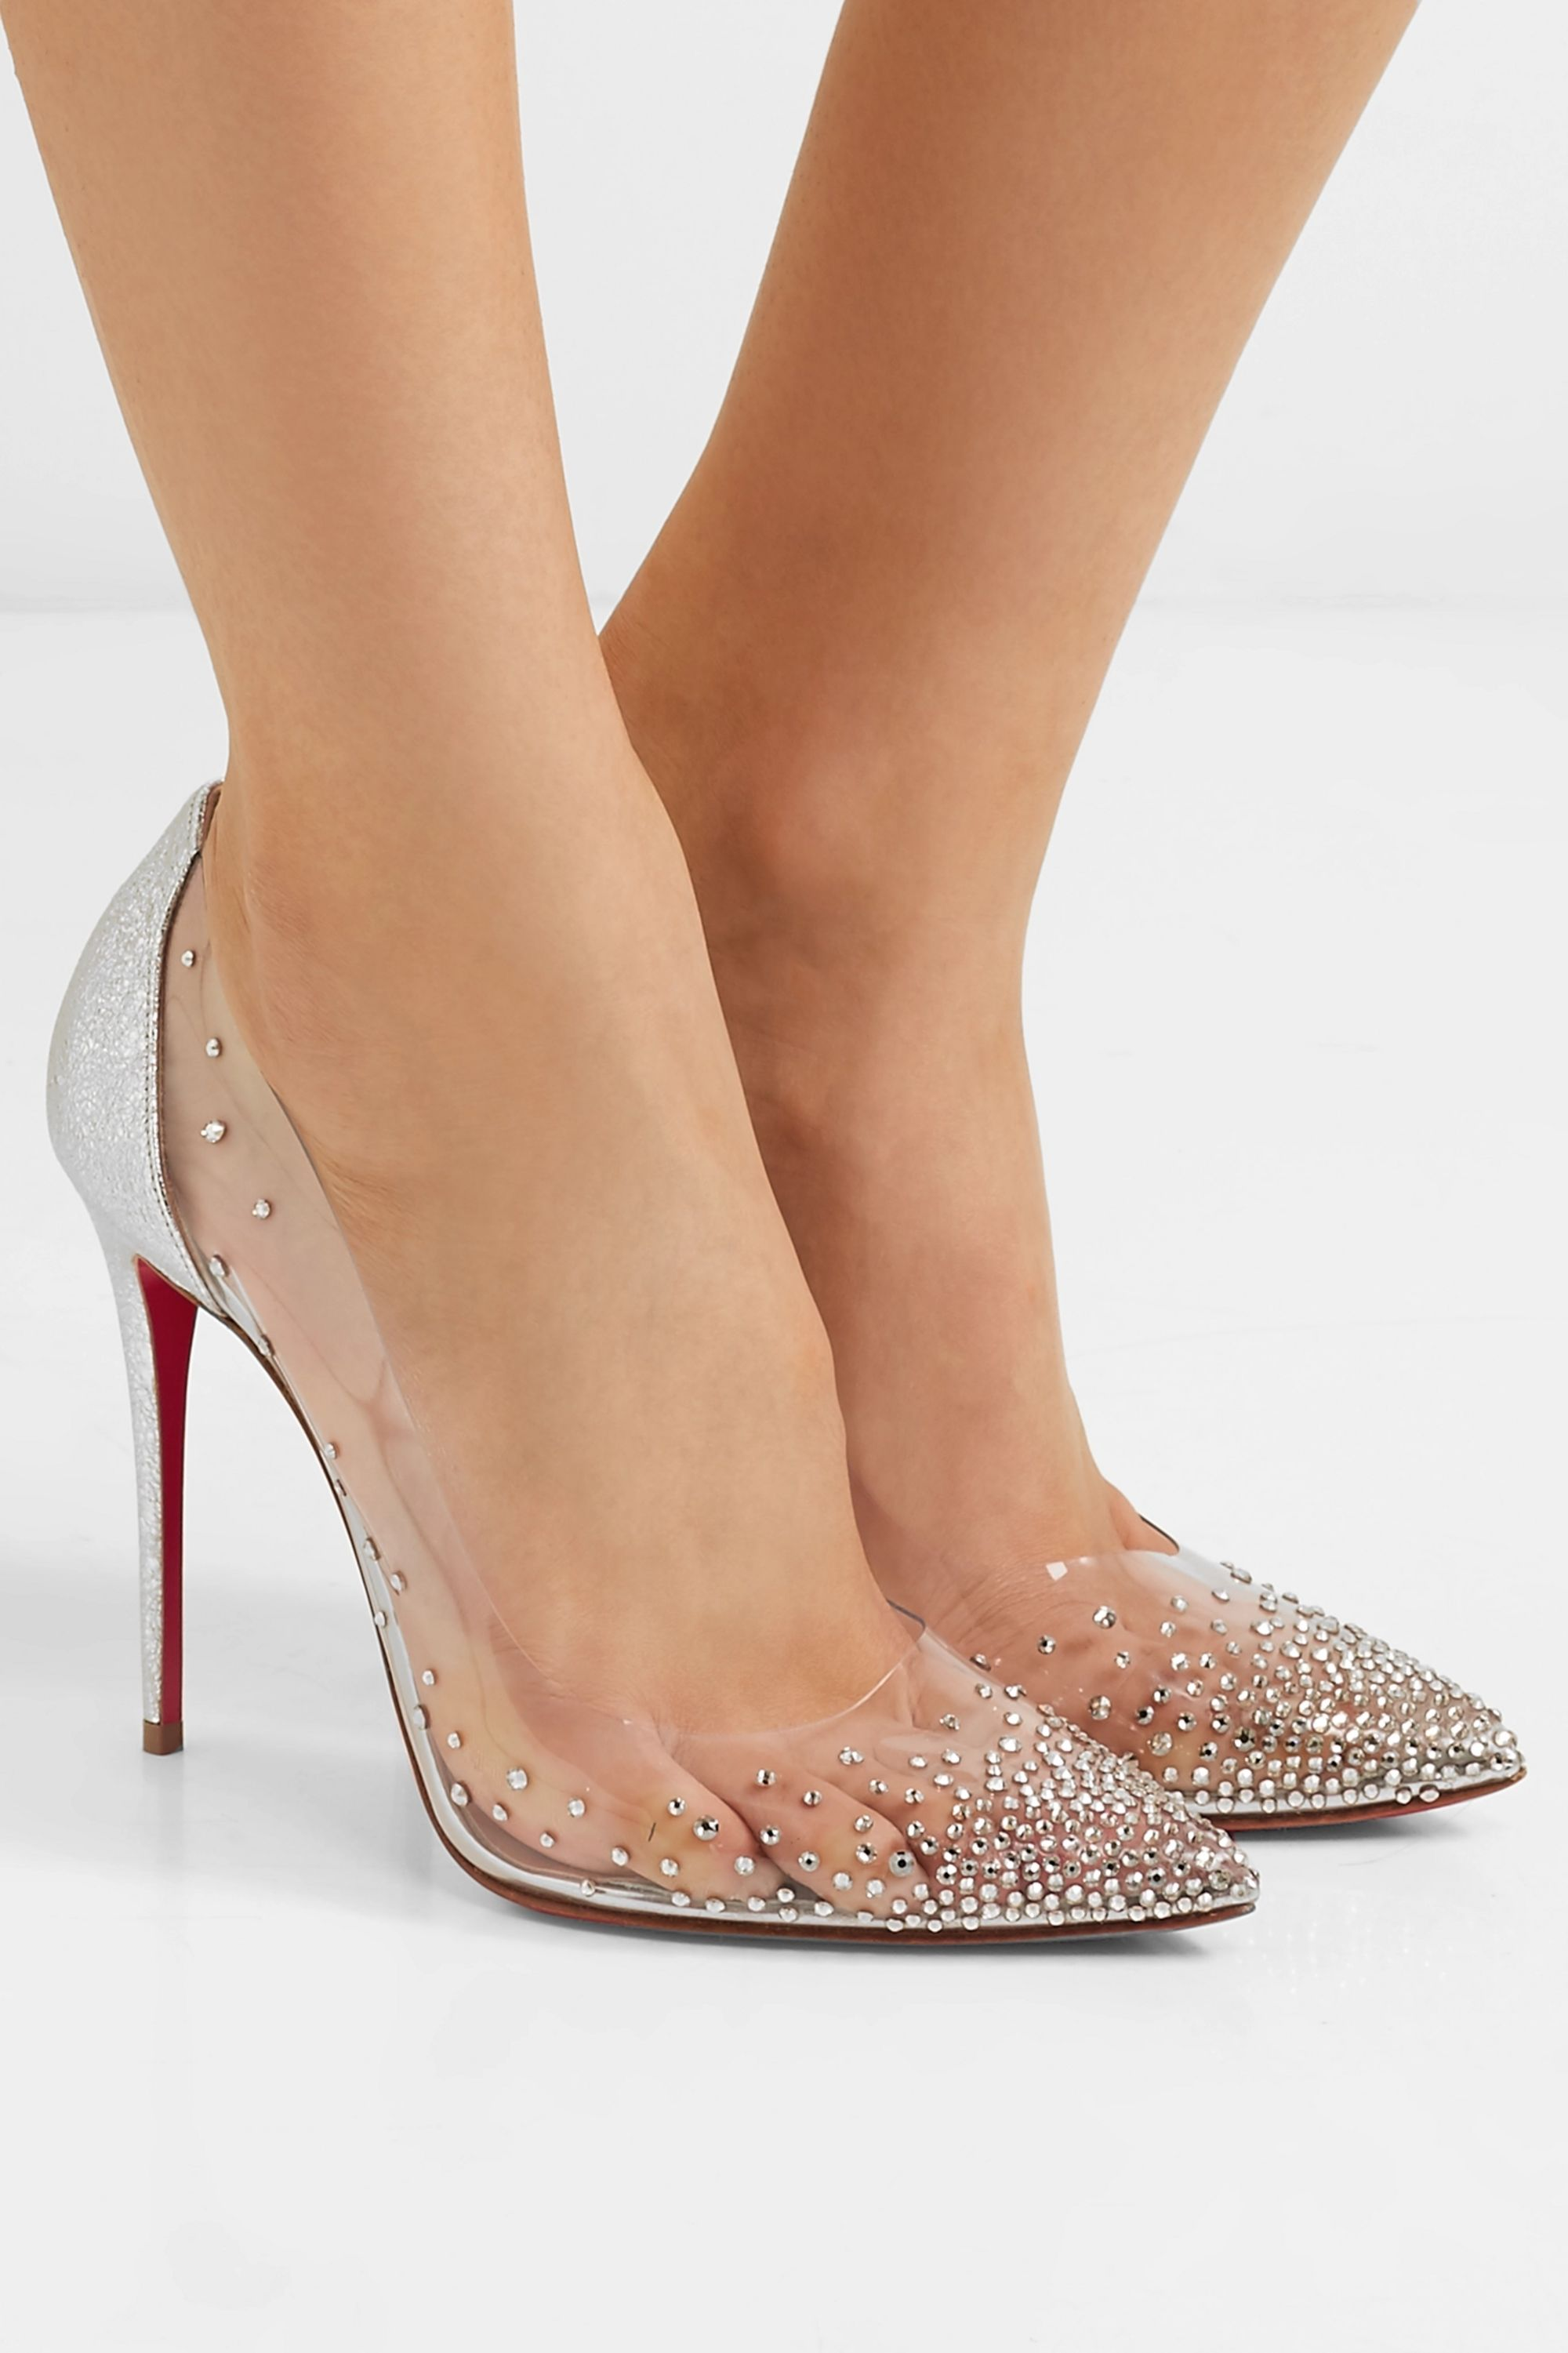 chaussure louboutin argente